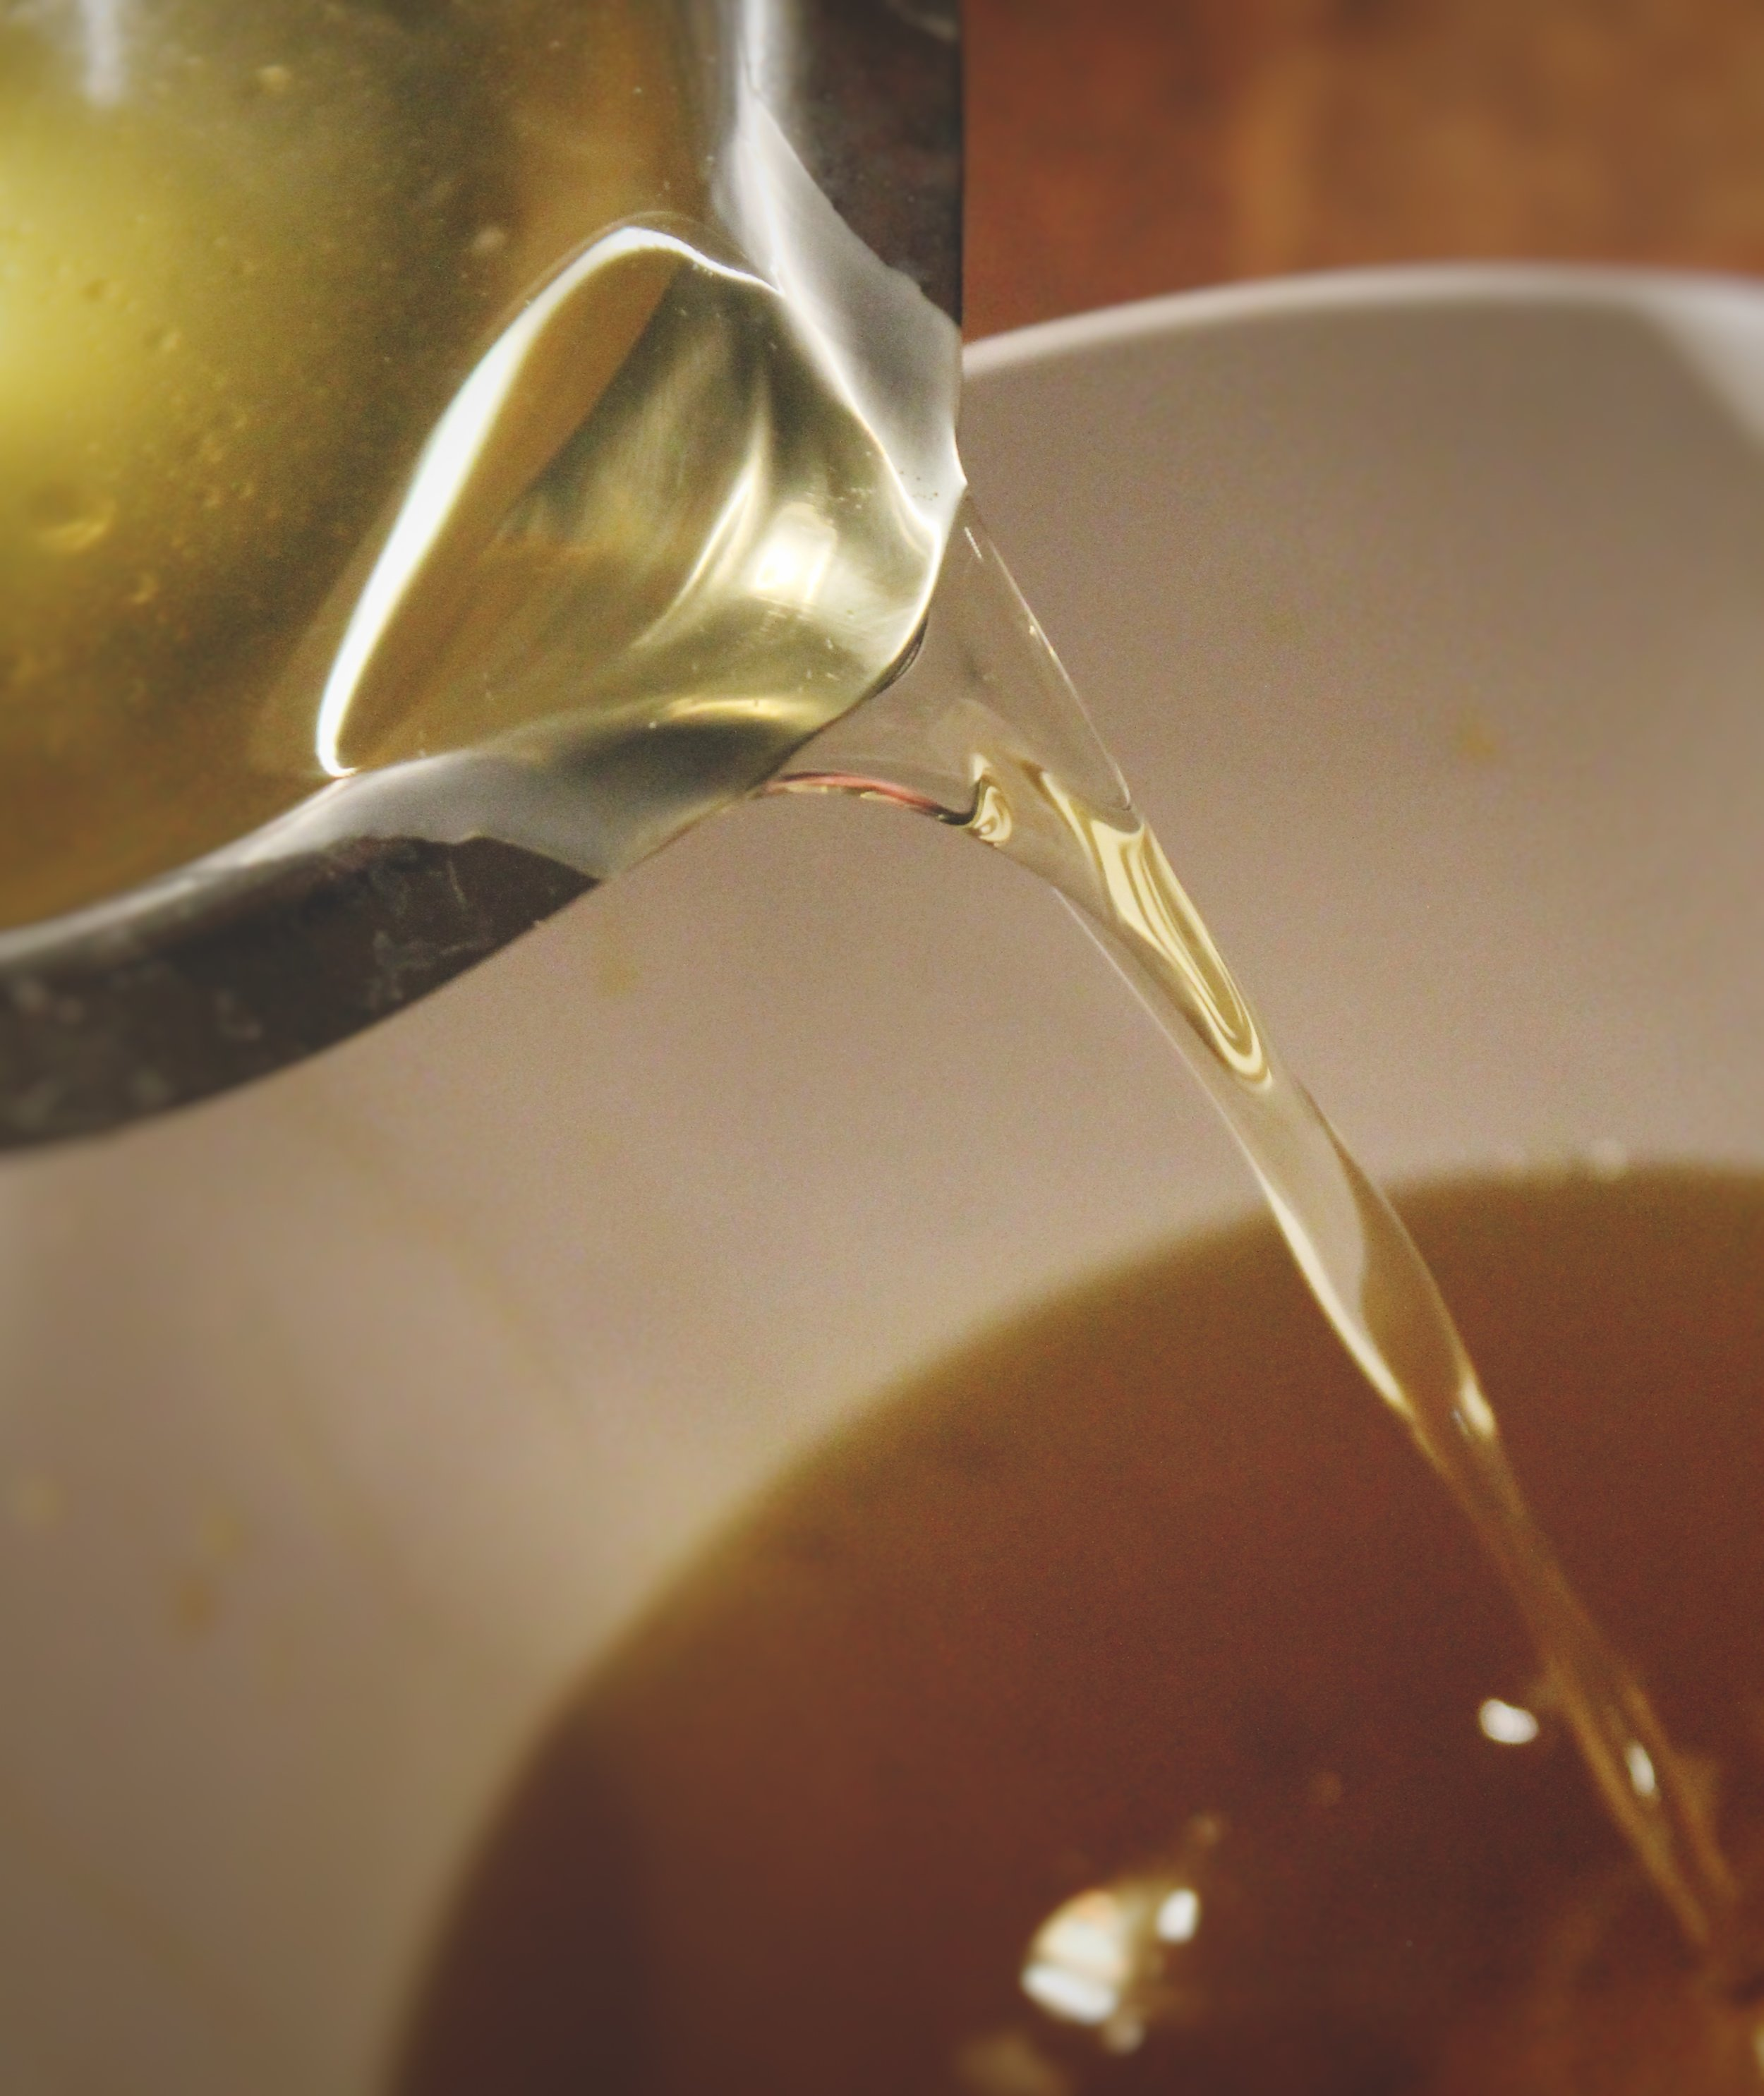 Combine melted beeswax with infused oil